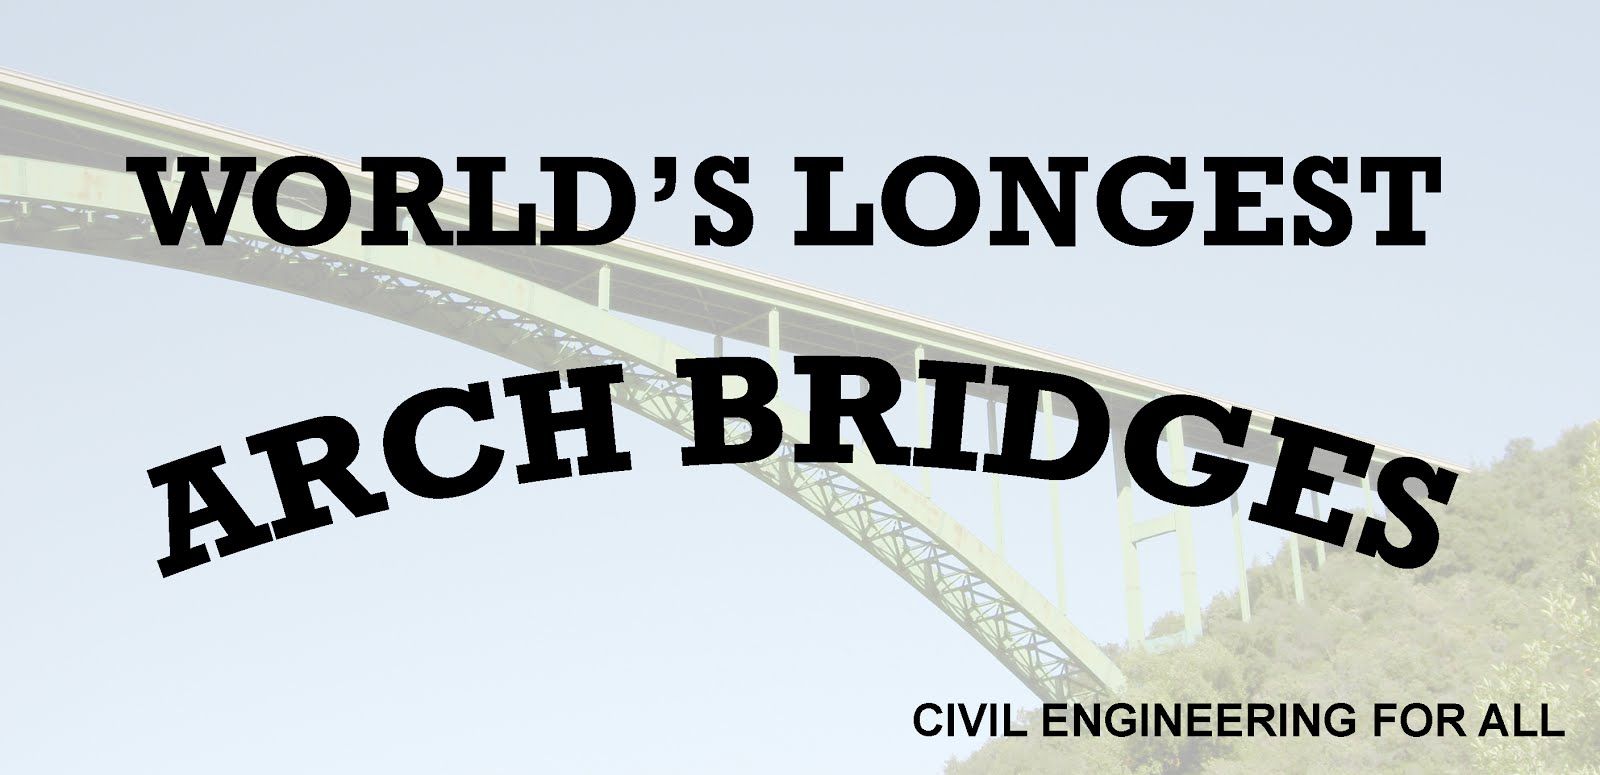 WORLD'S LONGEST ARCH BRIDGES